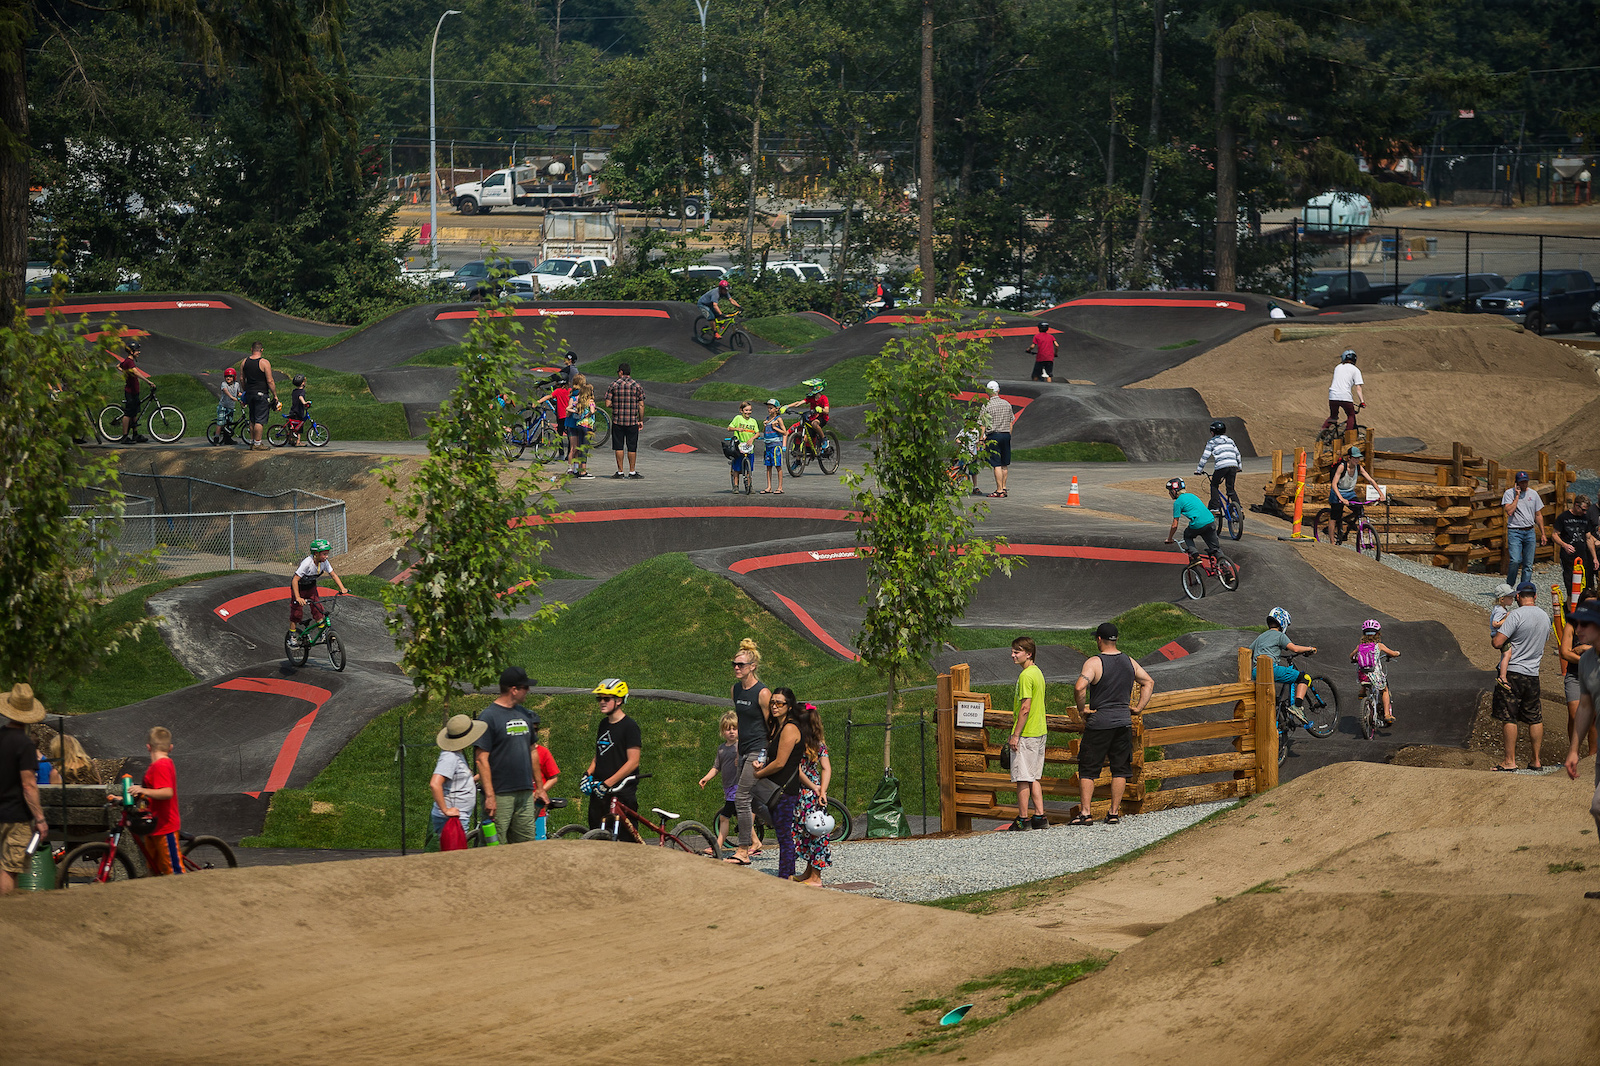 2500 square meters of pump track heaven.